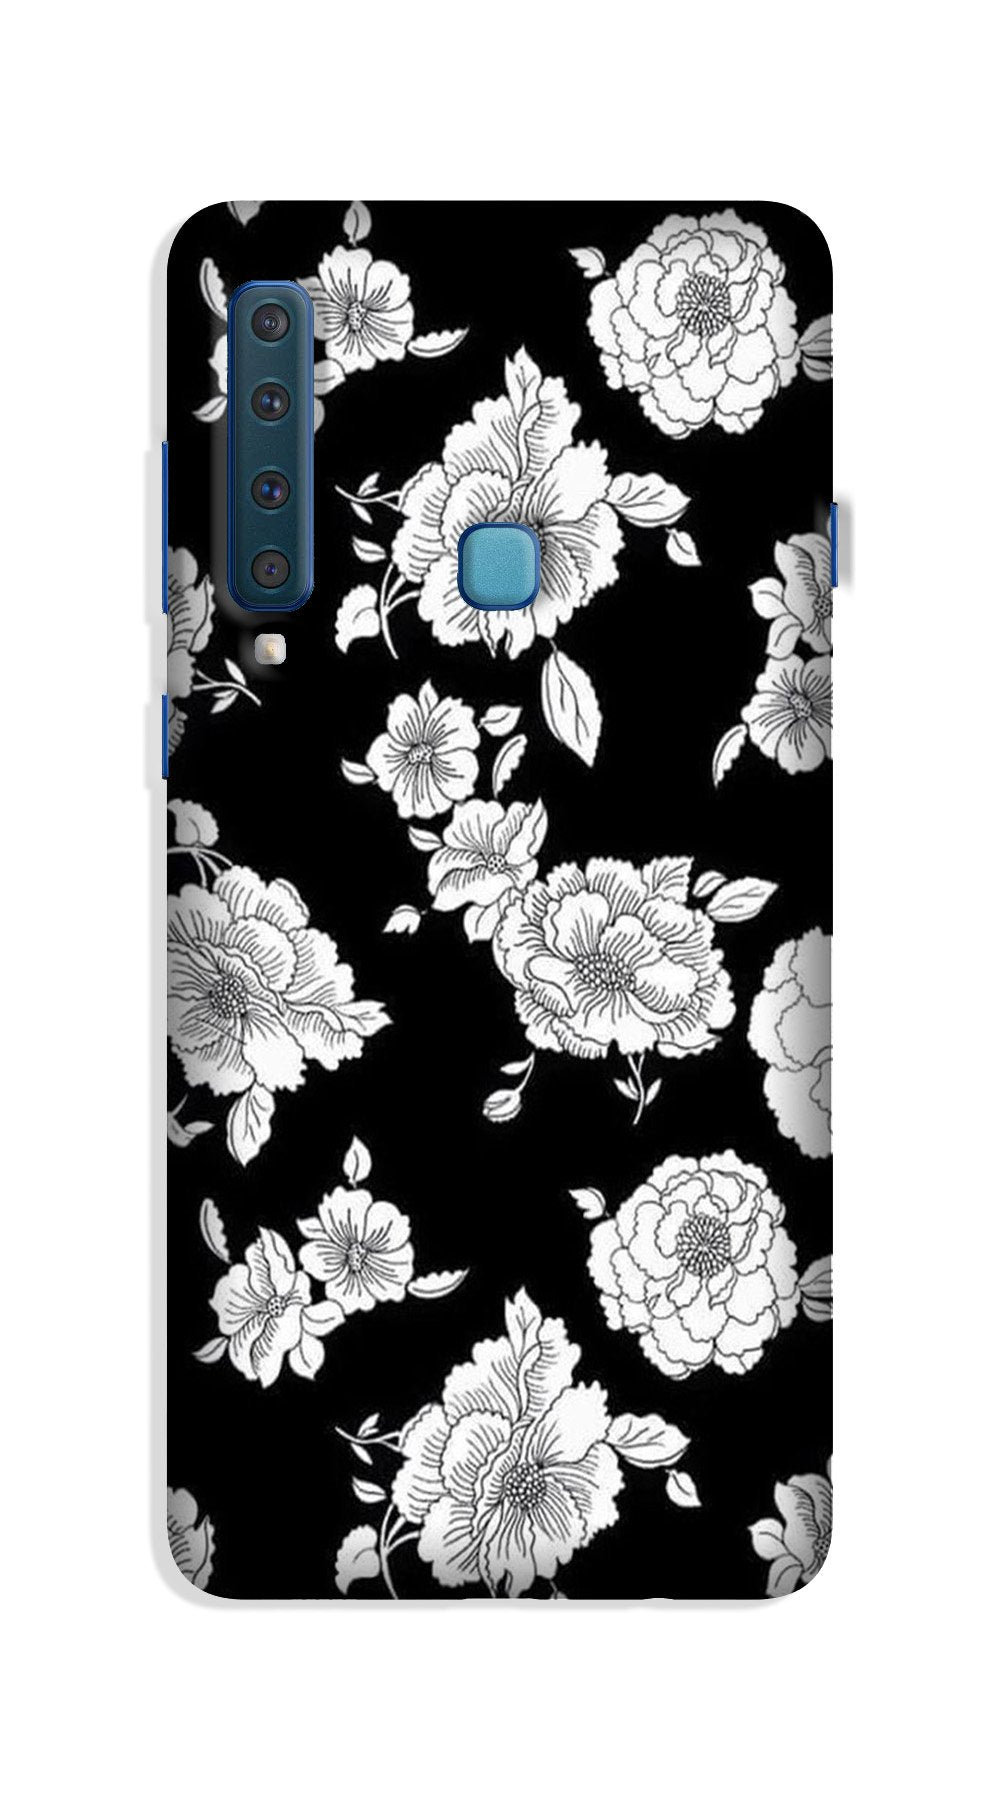 White flowers Black Background Case for Galaxy A9 (2018)